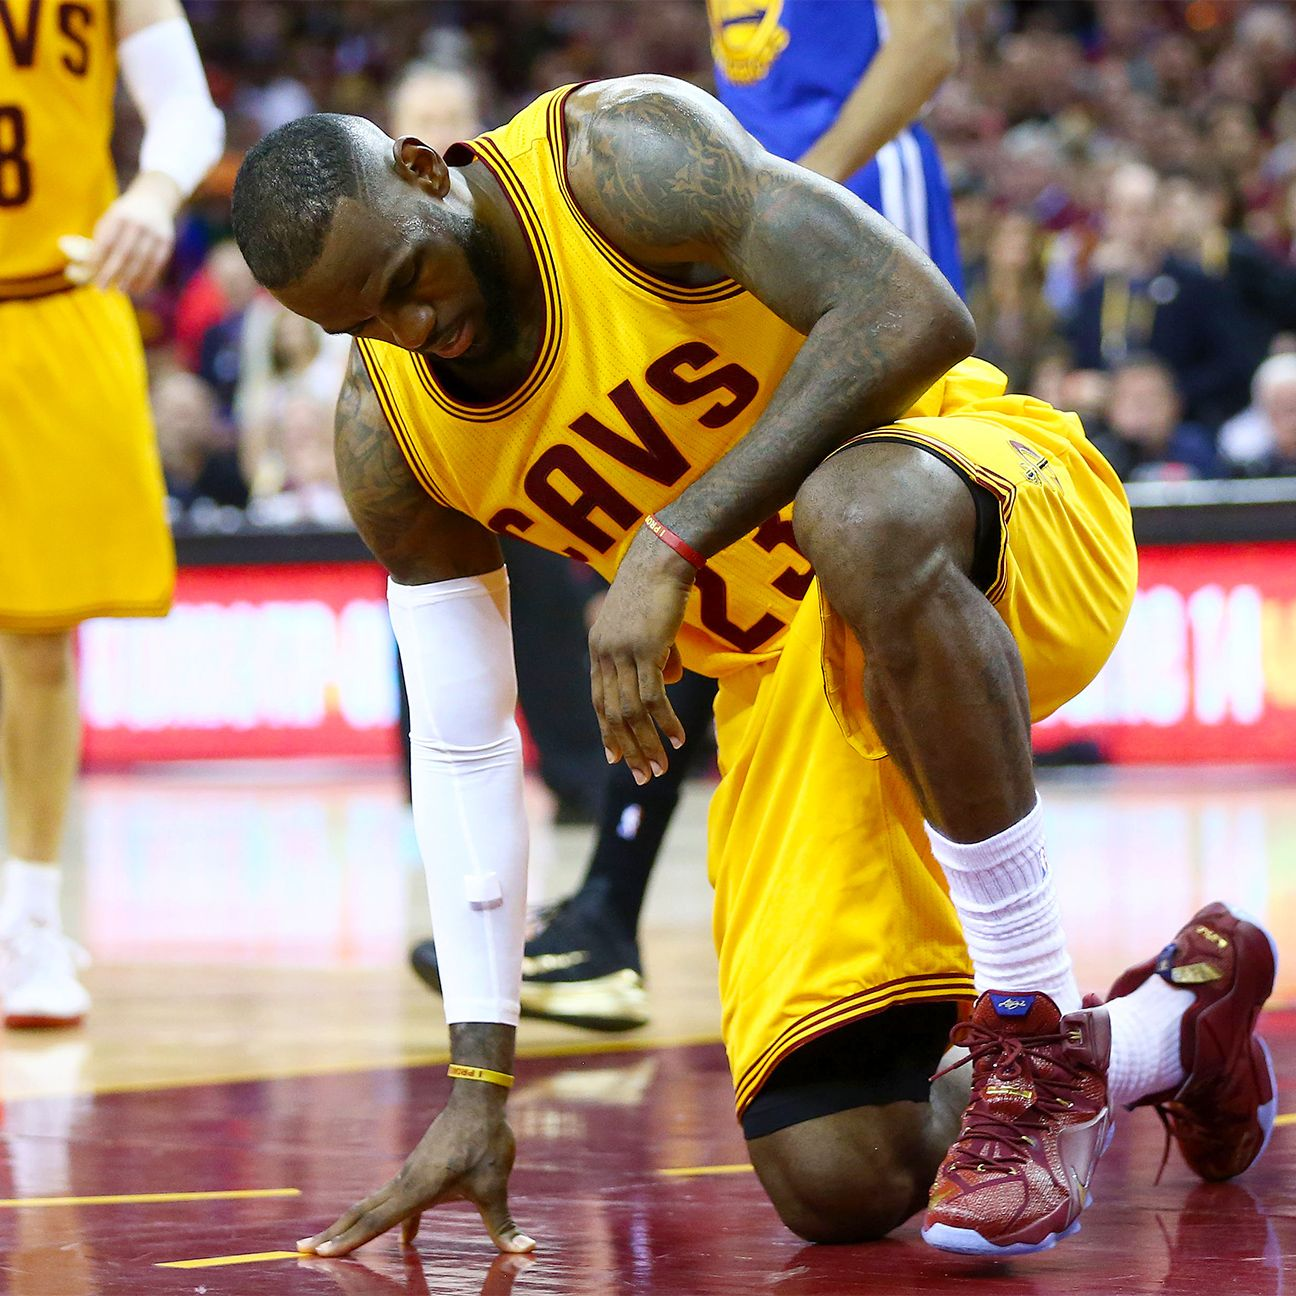 Cautious Cavs Lebron Gets Injection In Back Lebron James Sports Pictures Lebron